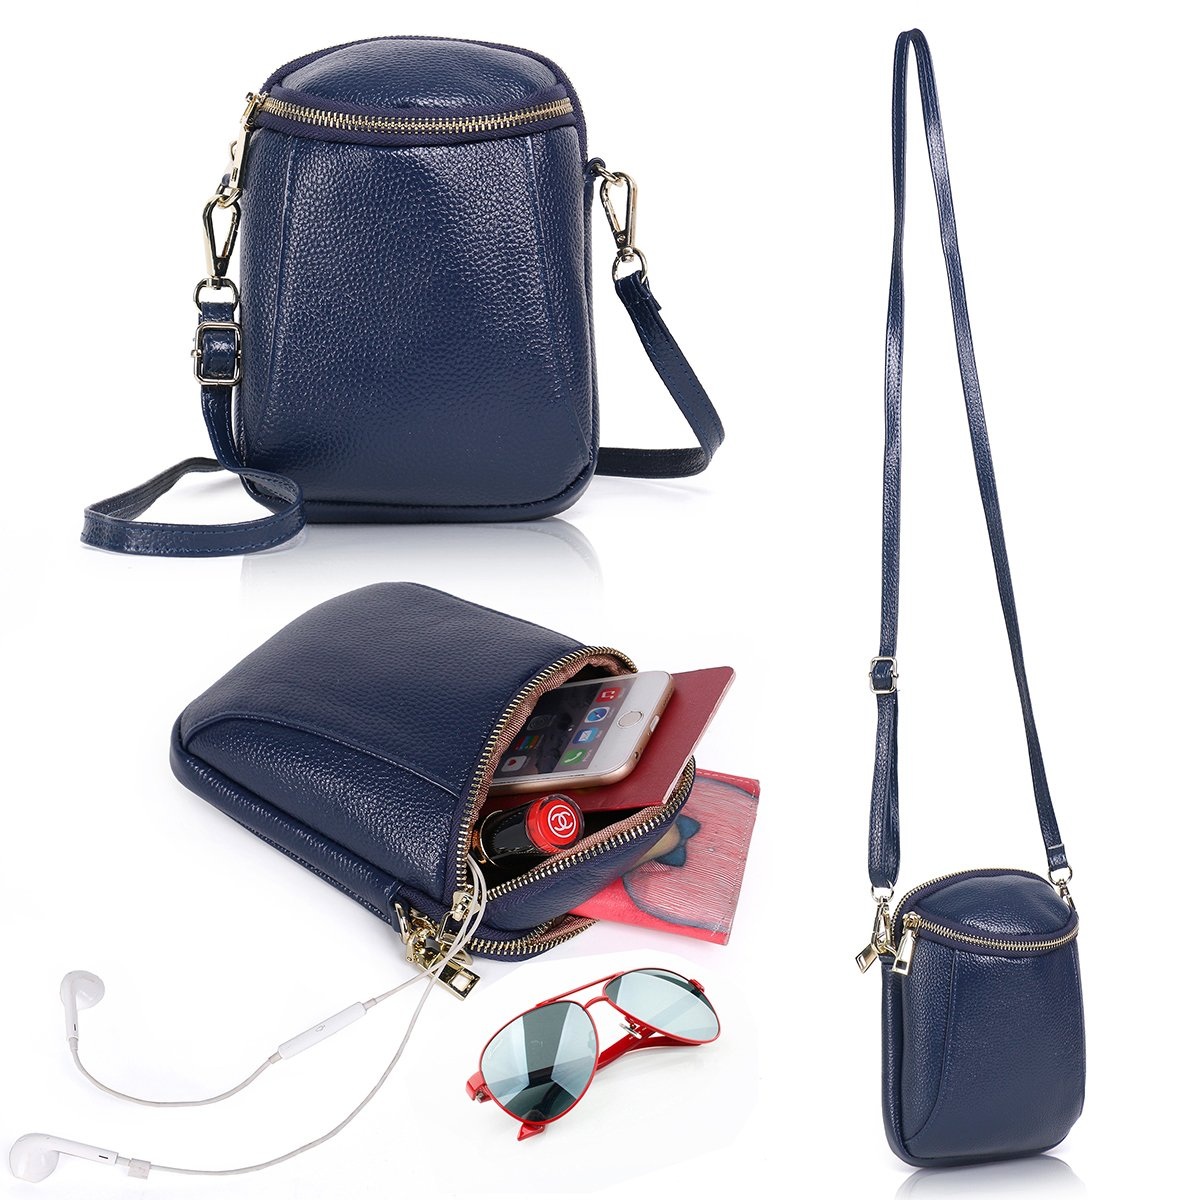 Zg Girls Women 100% Real Leather Small Cute Crossbody Cell Phone Purse Wallet Bag with Shoulder Strap Fits for IPhone 6 6S 7 Plus and Samsung Galaxy S7 Edge S8 Edge - Navy Blue